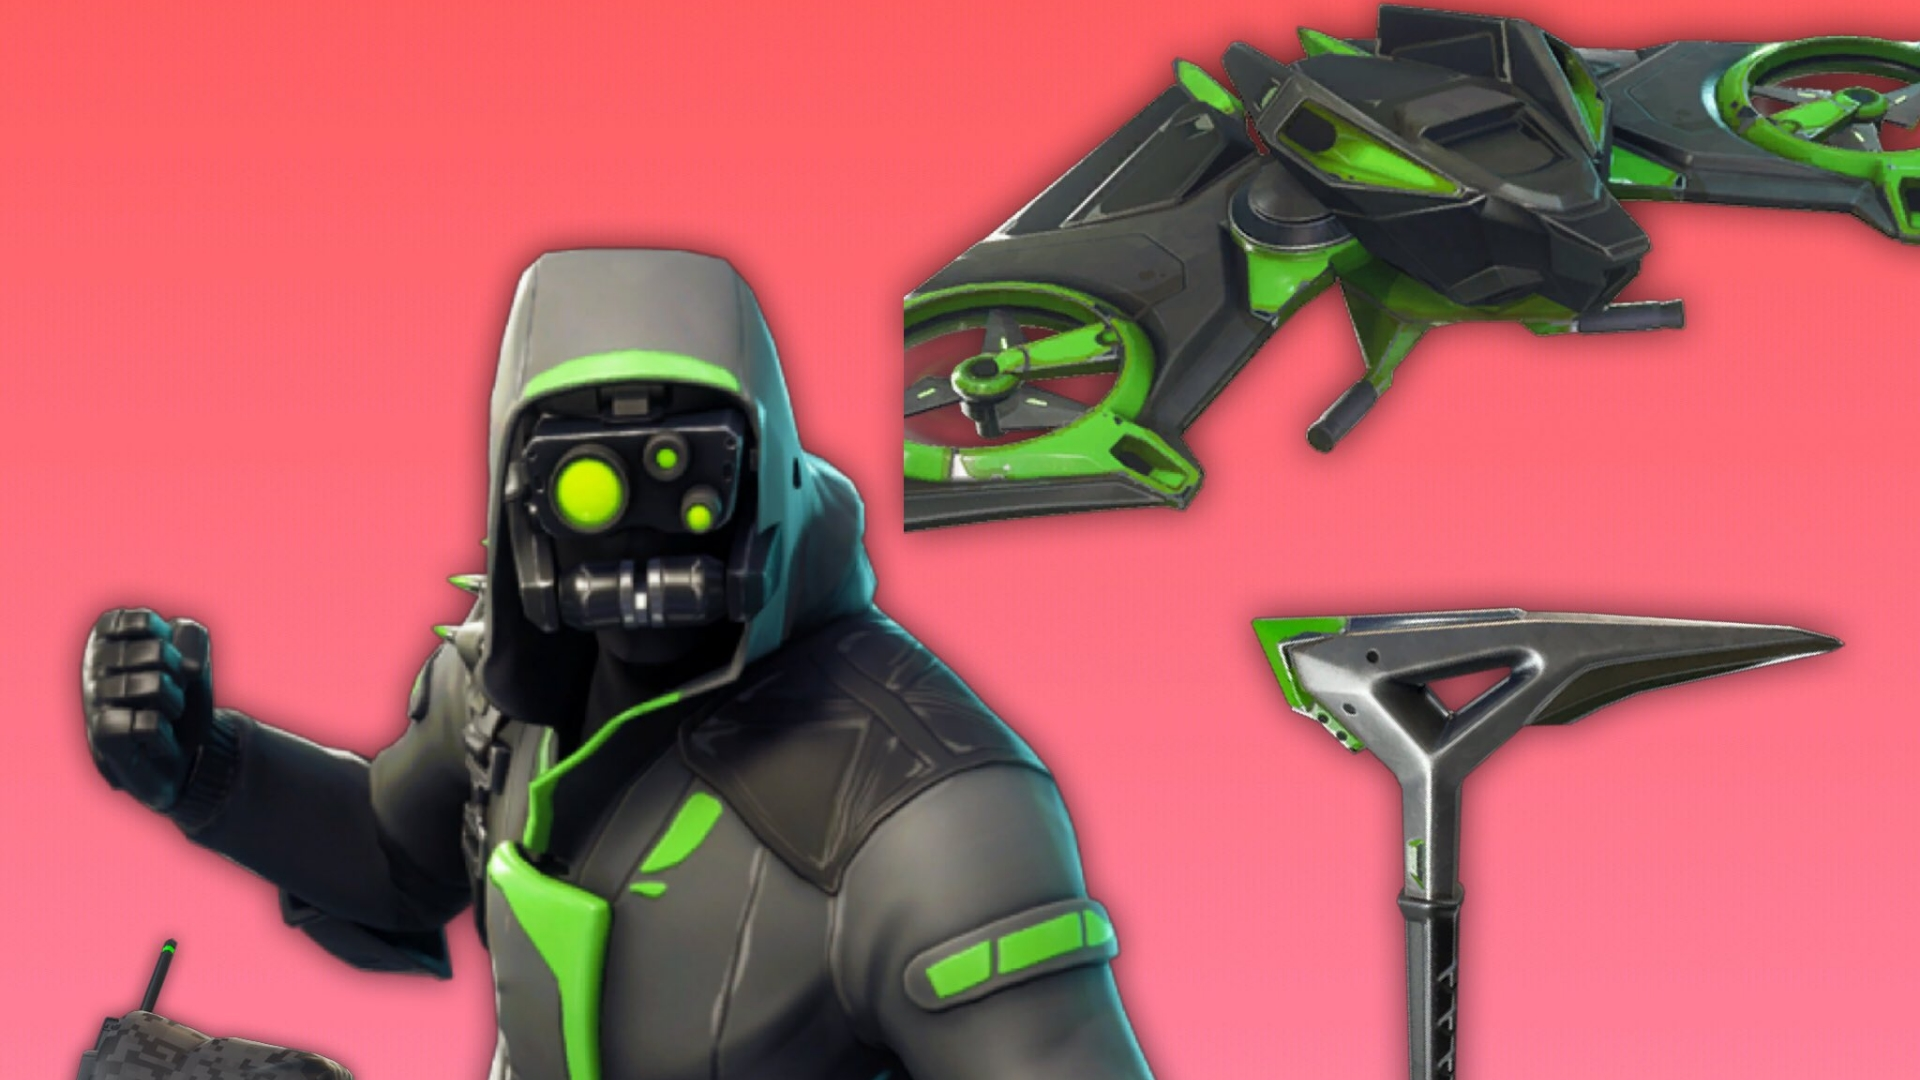 August Twitch Prime Fortnite Fortnite Battle Royale S Upcoming Twitch Prime Pack 3 May Have Leaked